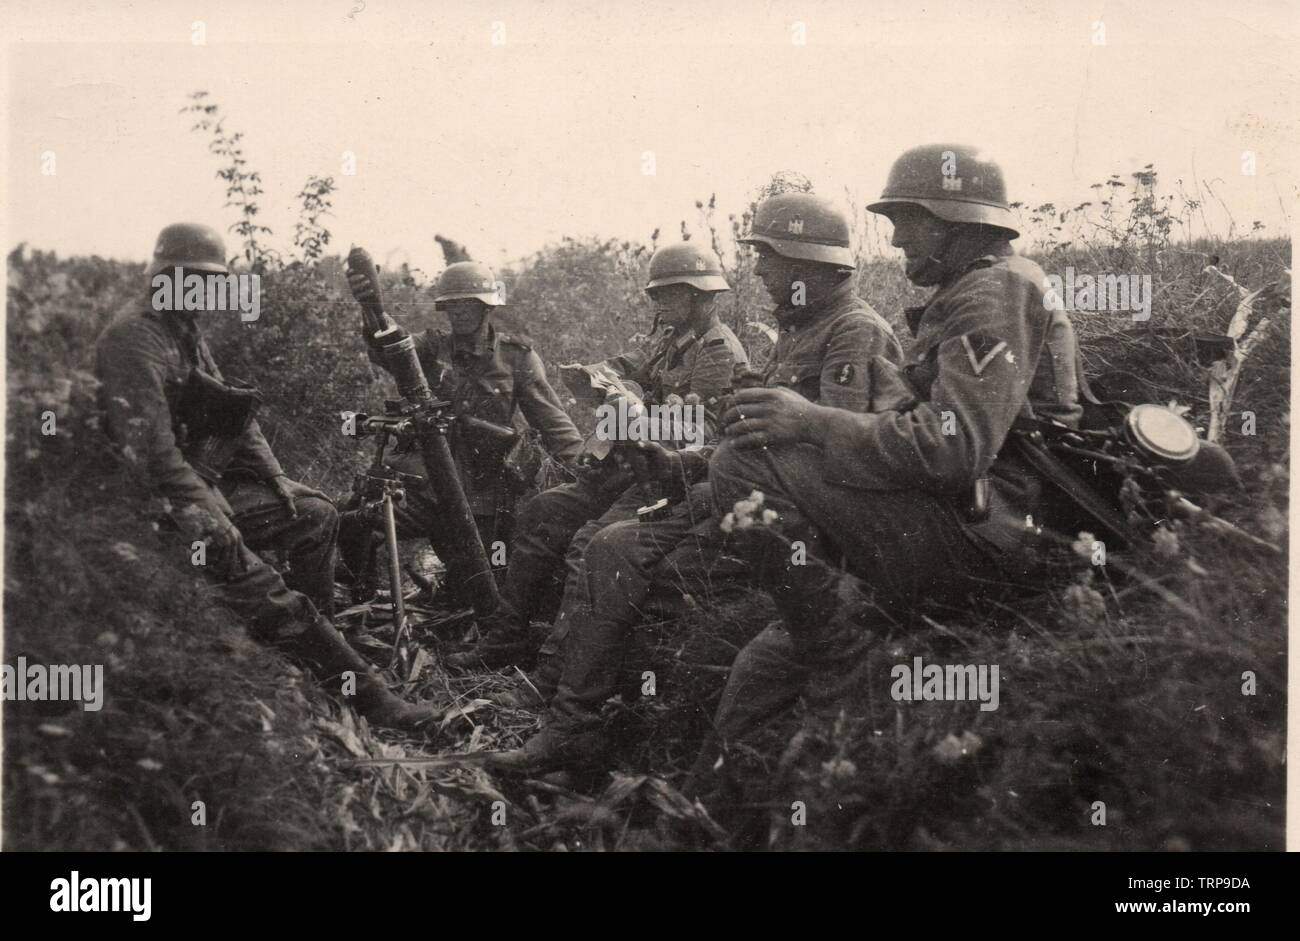 German Soldiers with a 8cm Mortar during the Invasion of Poland 1939 - Stock Image